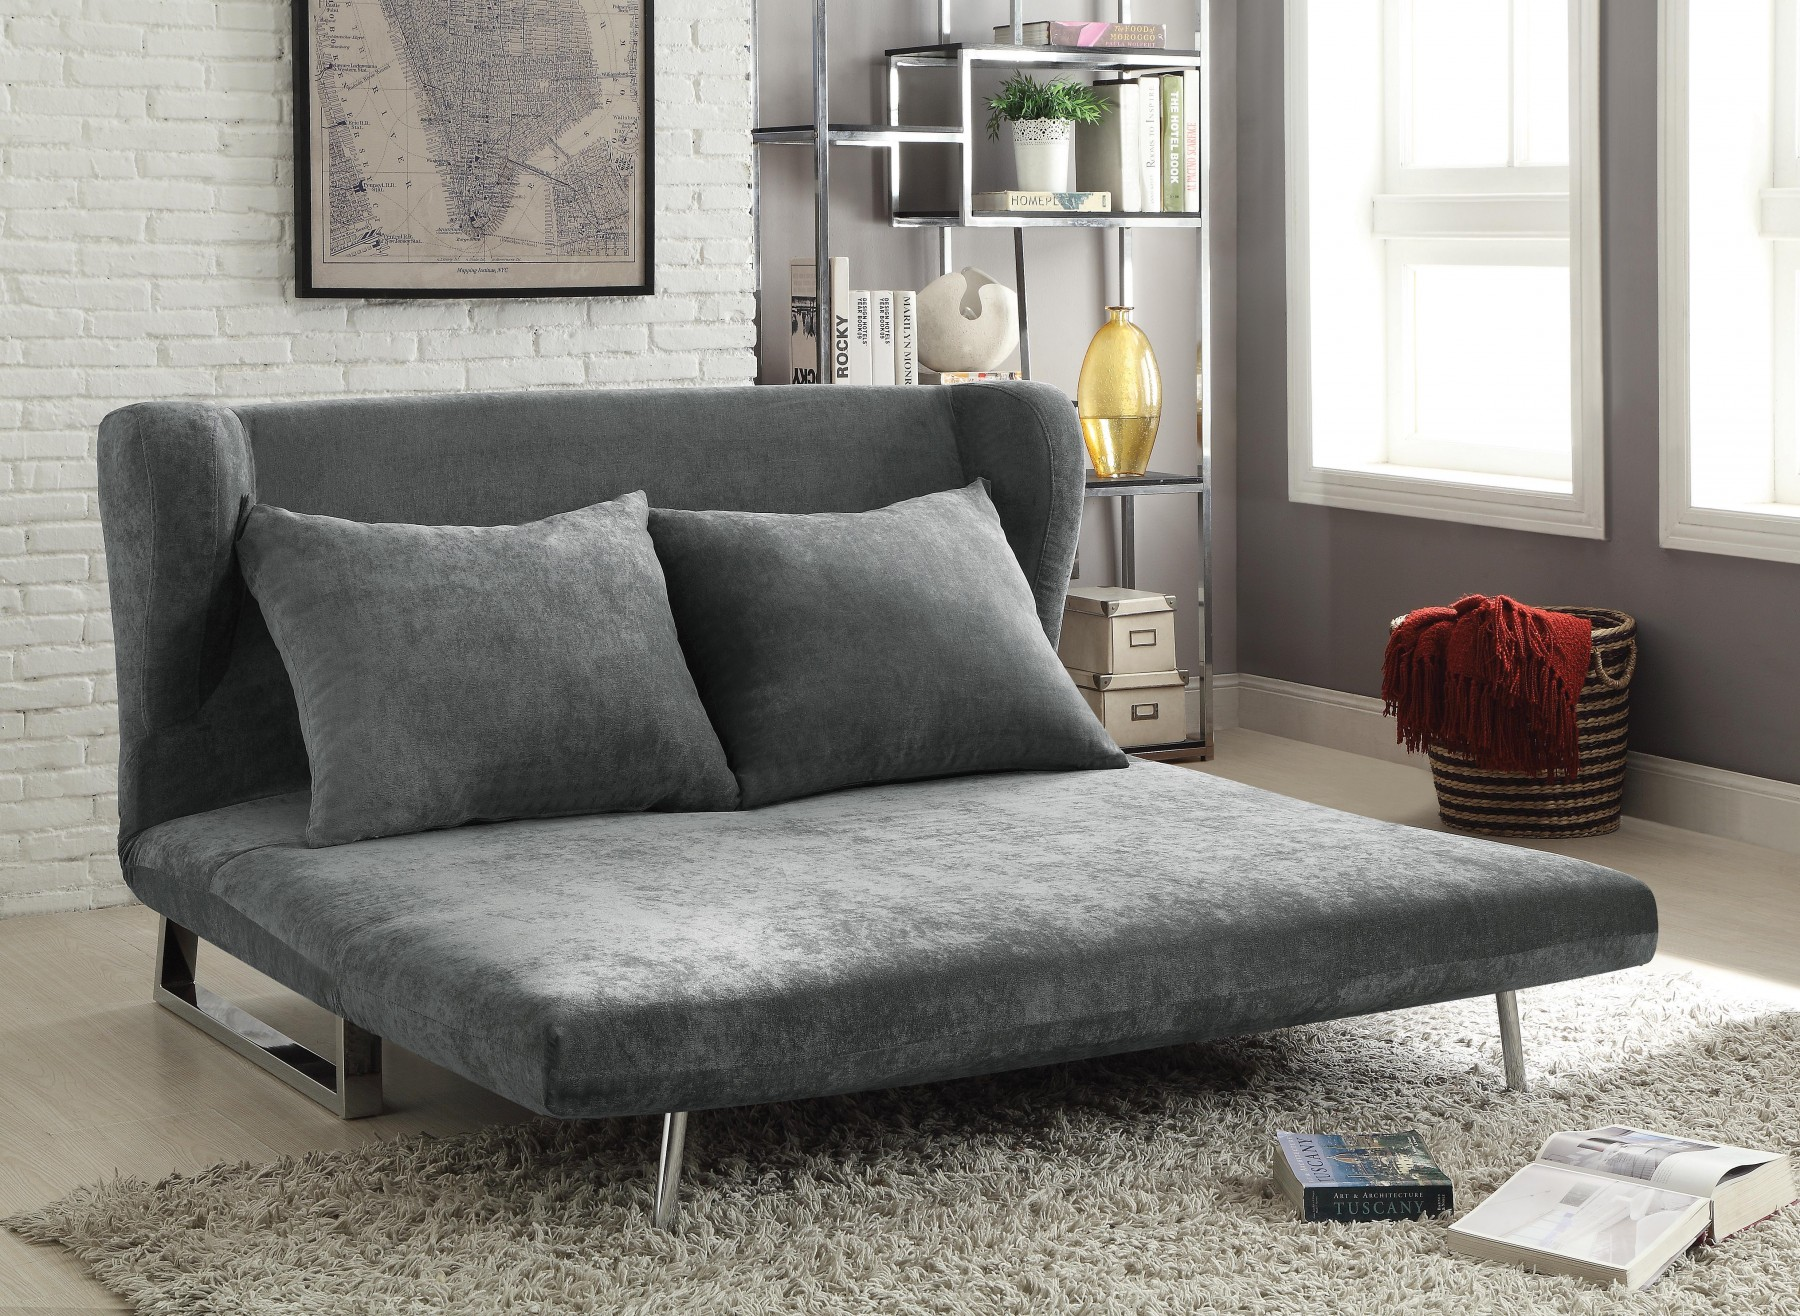 Chair Converts To Bed Contemporary Grey Sofa Bed Converts From Sofa To Chaise